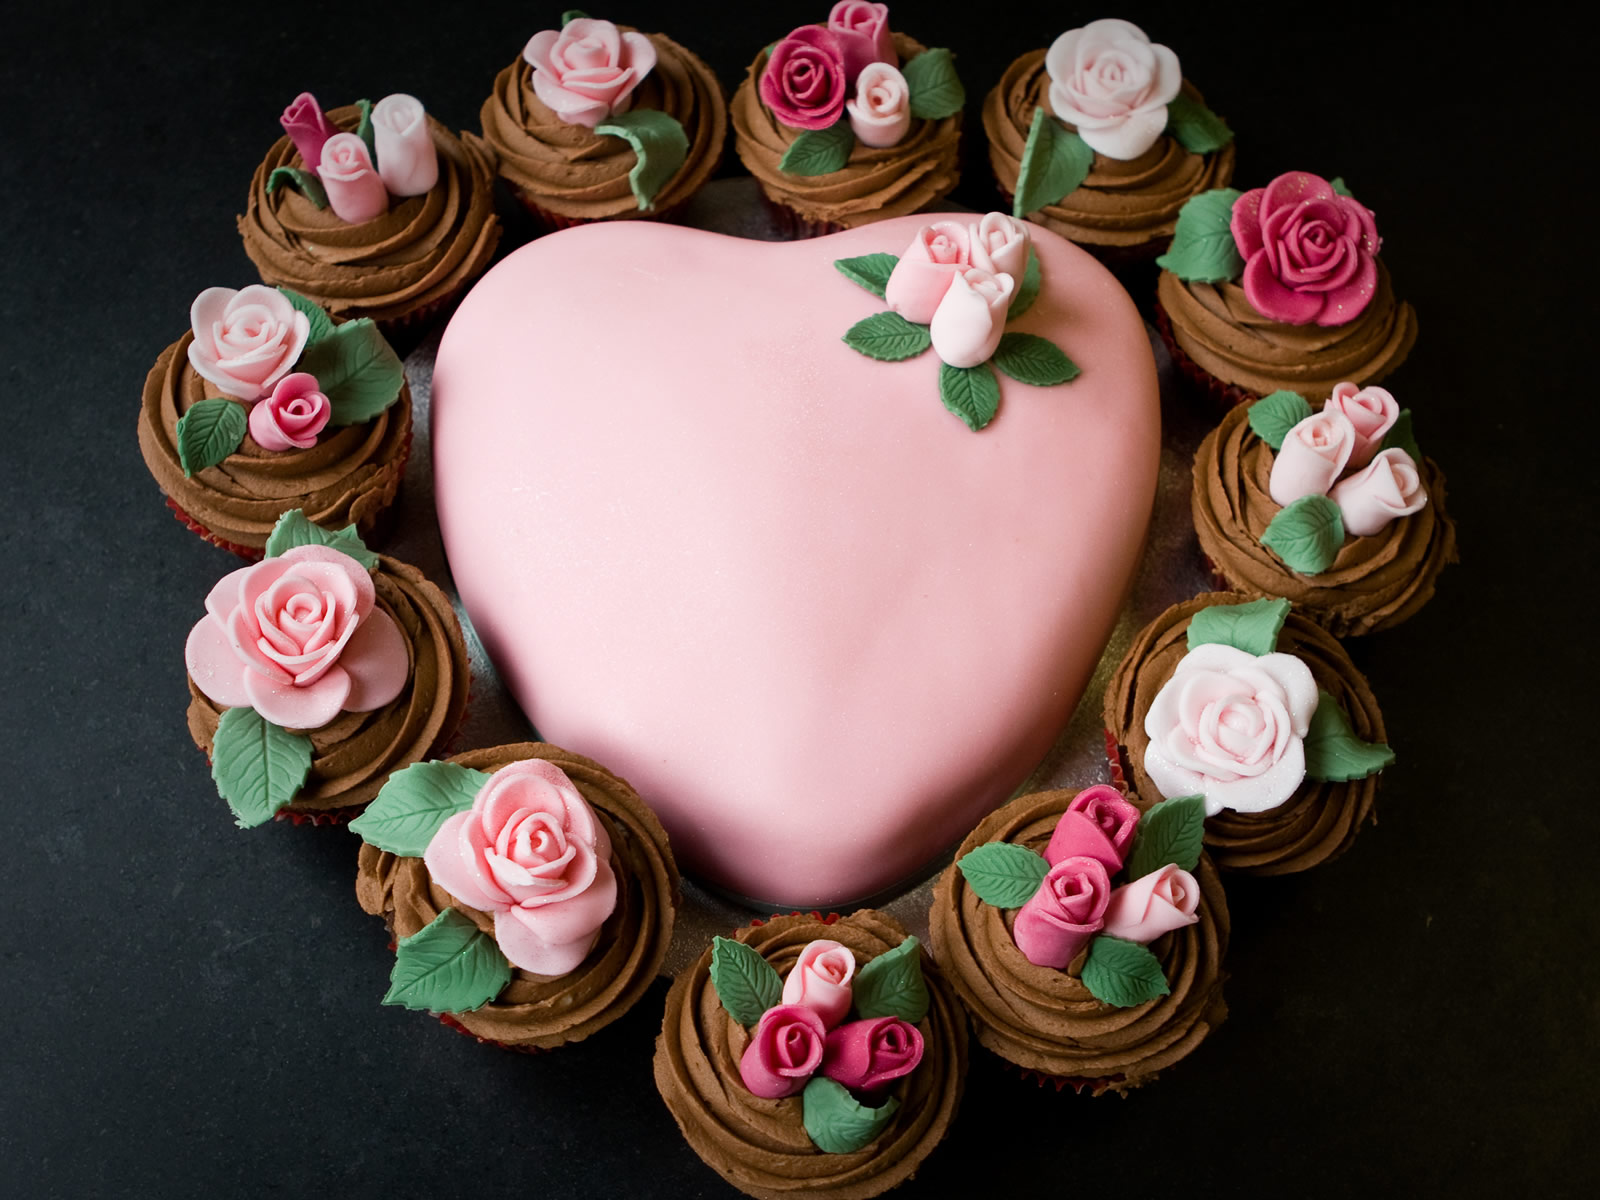 Love Cake Wallpaper